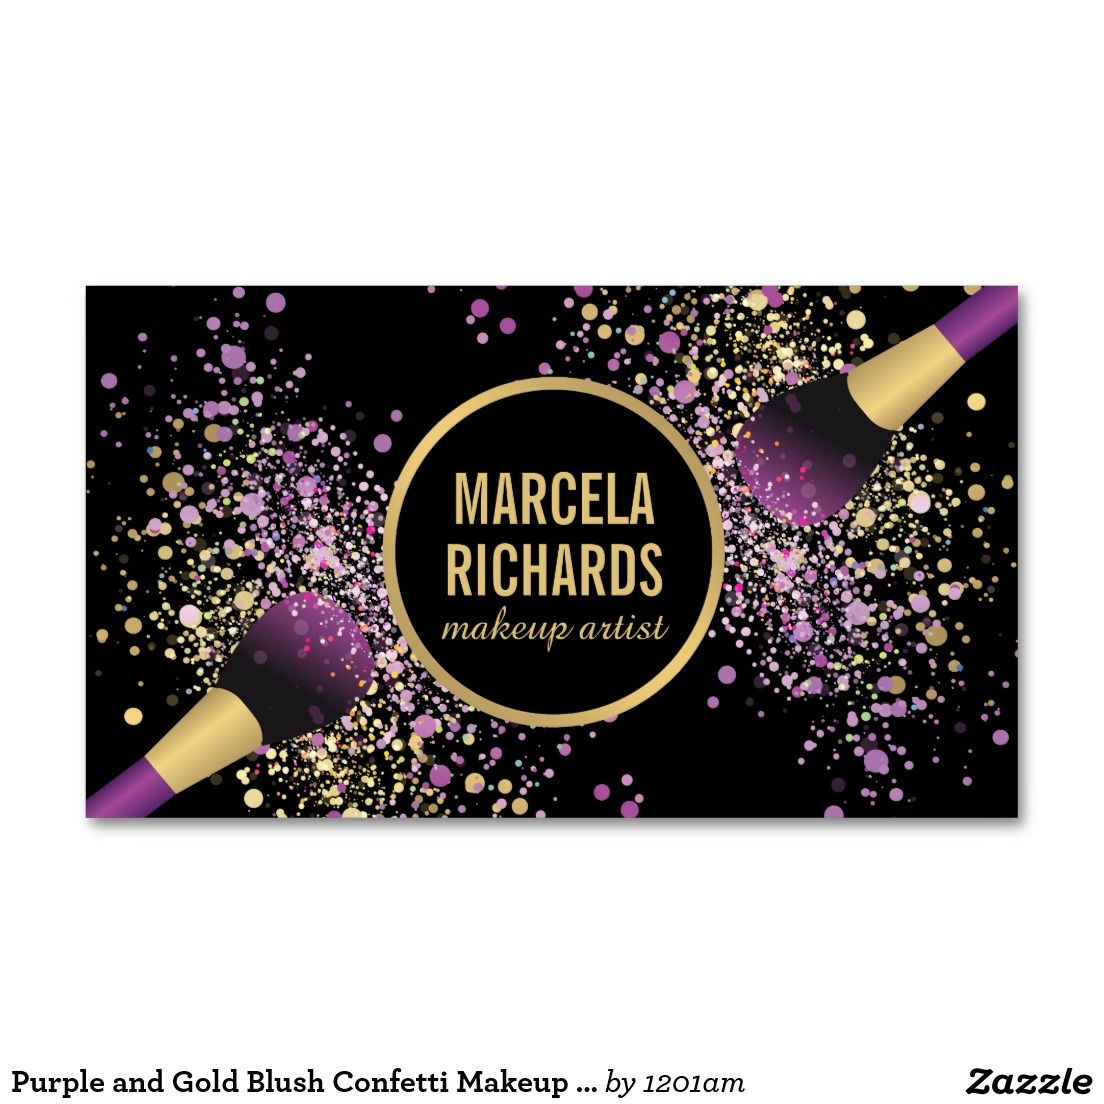 Purple and gold blush confetti makeup artist business card purple and gold blush brushes makeup artist business card personalize with your name or business magicingreecefo Images